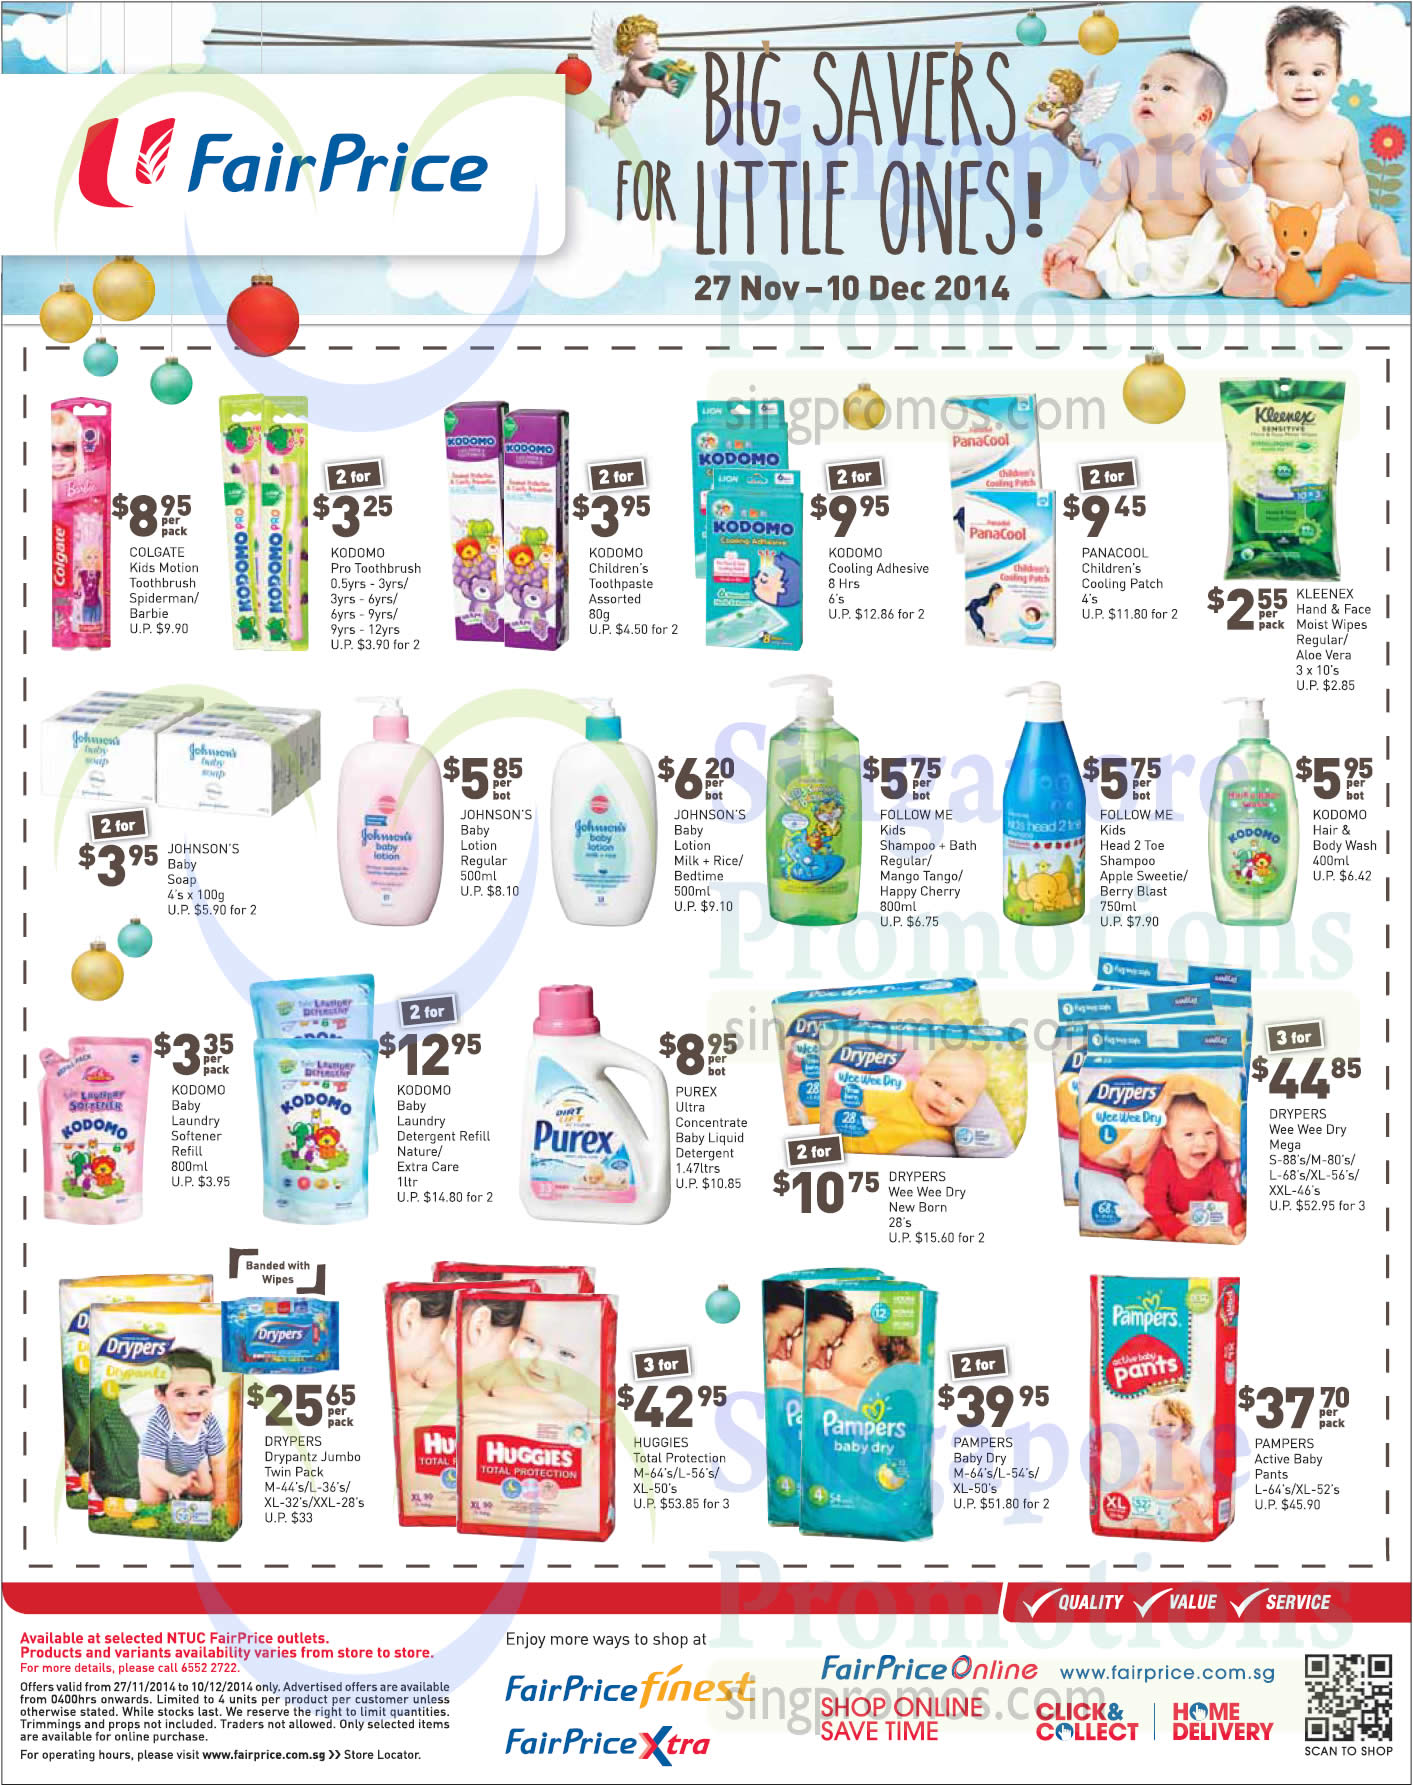 Baby Savers Toothpaste, Toothbrush, Detergent, Diapers, Body Wash, Kids Shampoo, Baby Lotion, Soap